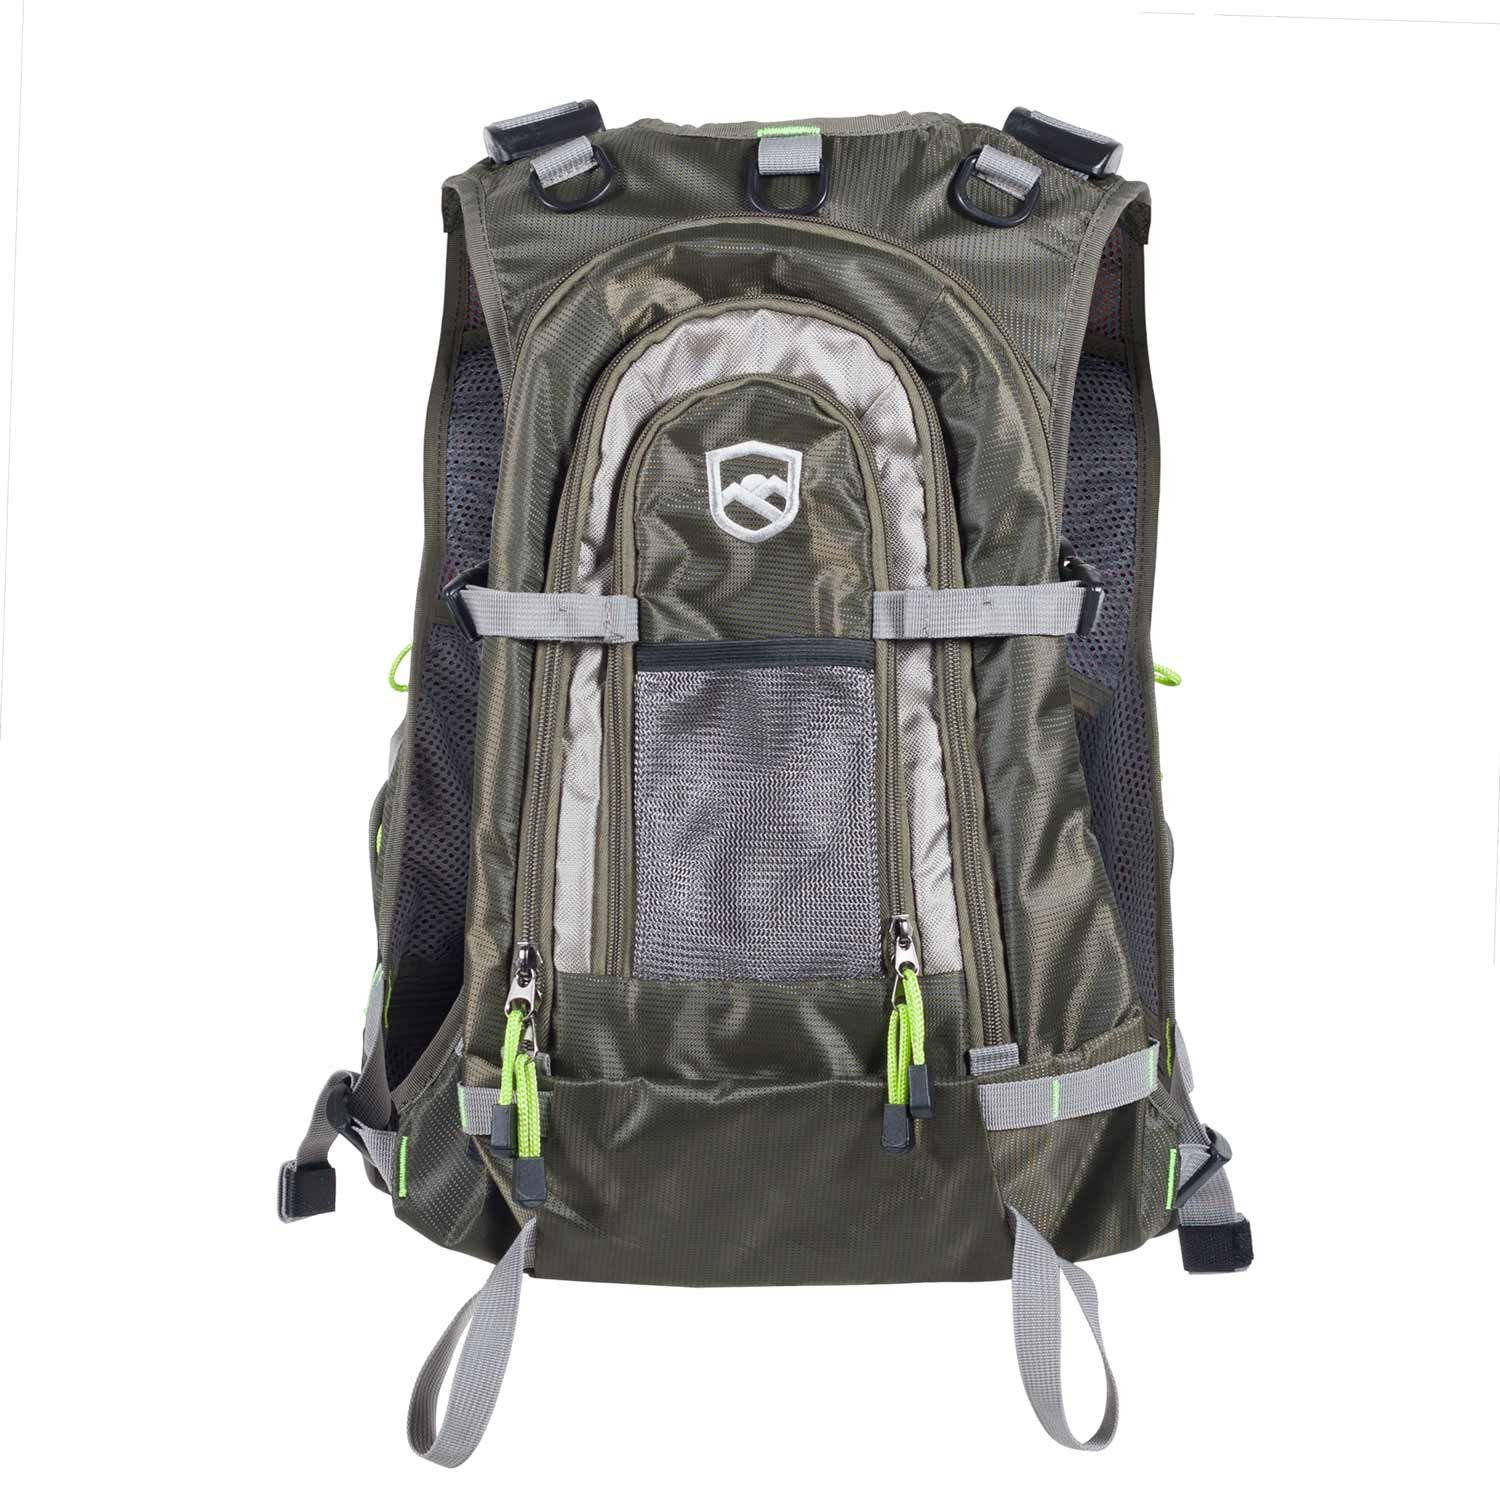 Elkton Outdoors Universal Fit Fly Fishing Vest Backpack With Hard Shell  Storage Compartments And Rod Holders / Fly Fishing Vest Pack / Fishing Vest  Mesh